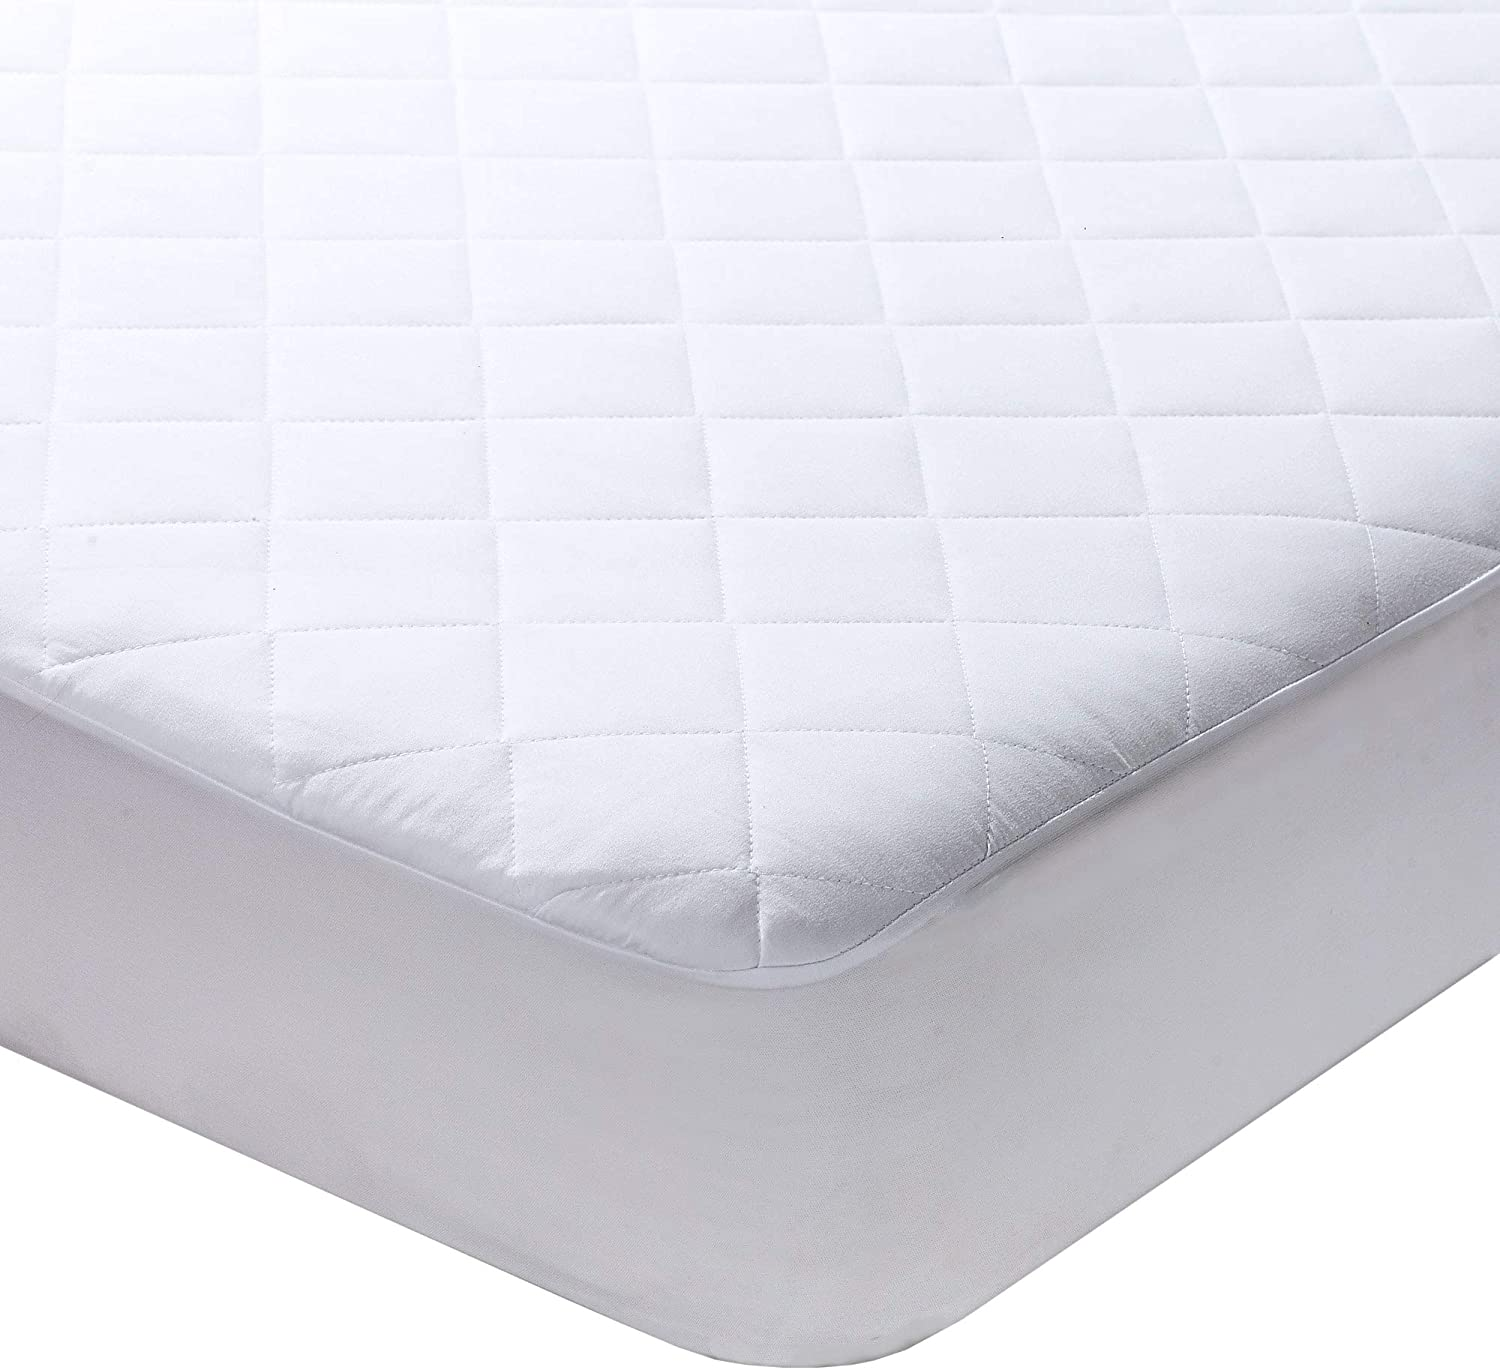 10 X DOUBLE HOTEL QUALITY WHITE DEEP FITTED ANTI ALLERGENIC MATTRESS PROTECTOR